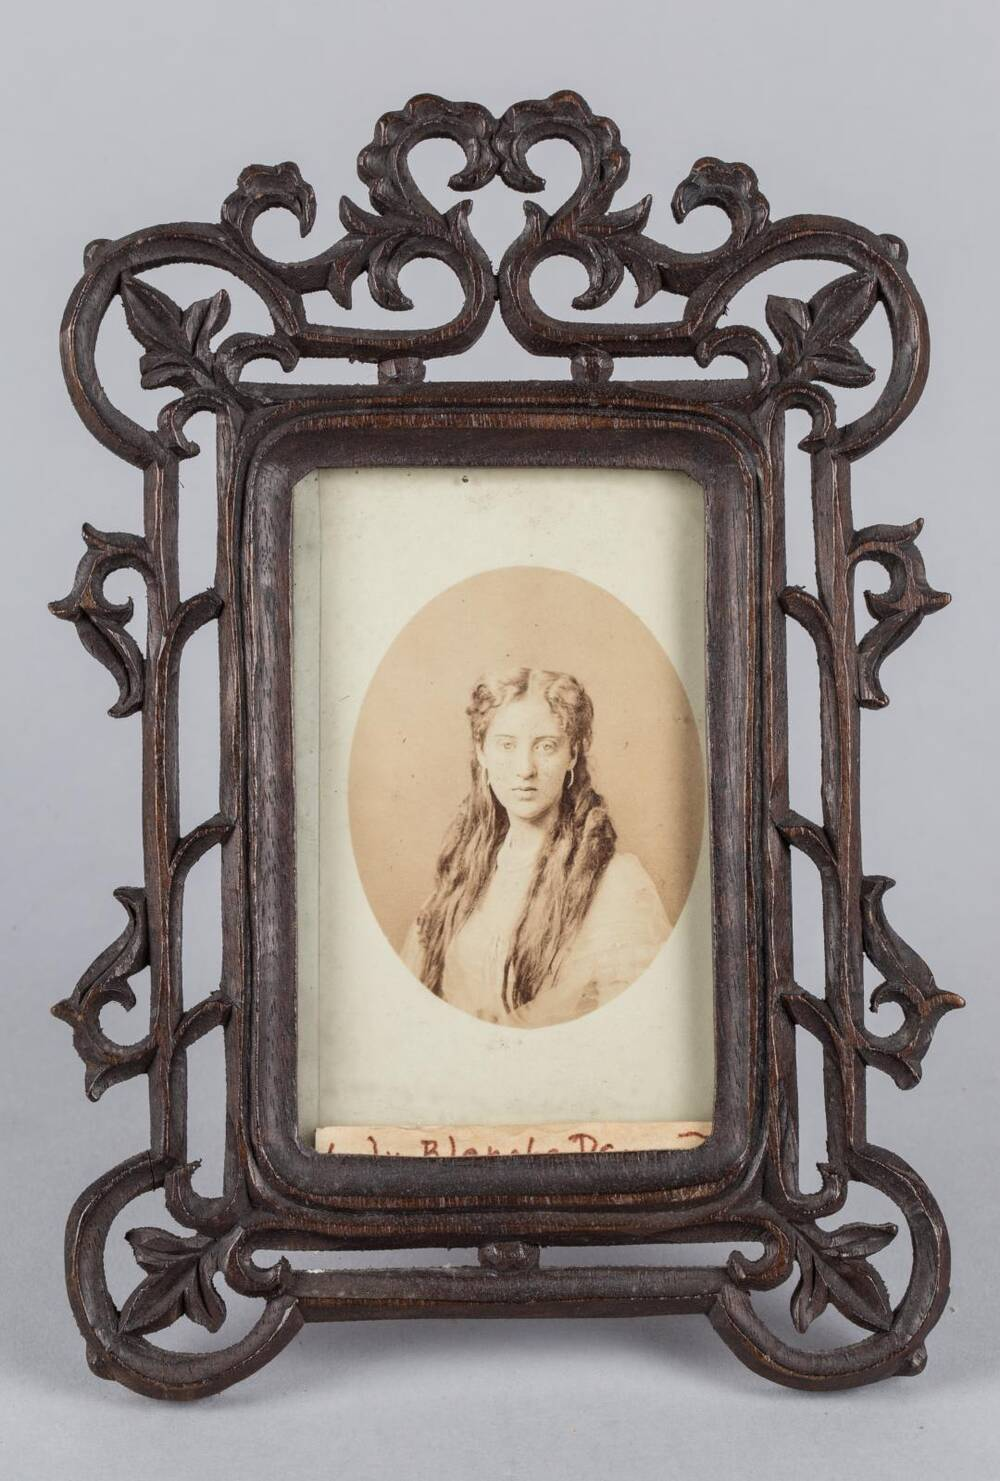 A sepia-coloured photograph of a woman with long hair in a half-up do, wearing a white dress, is displayed in an ornate wooden photo frame.